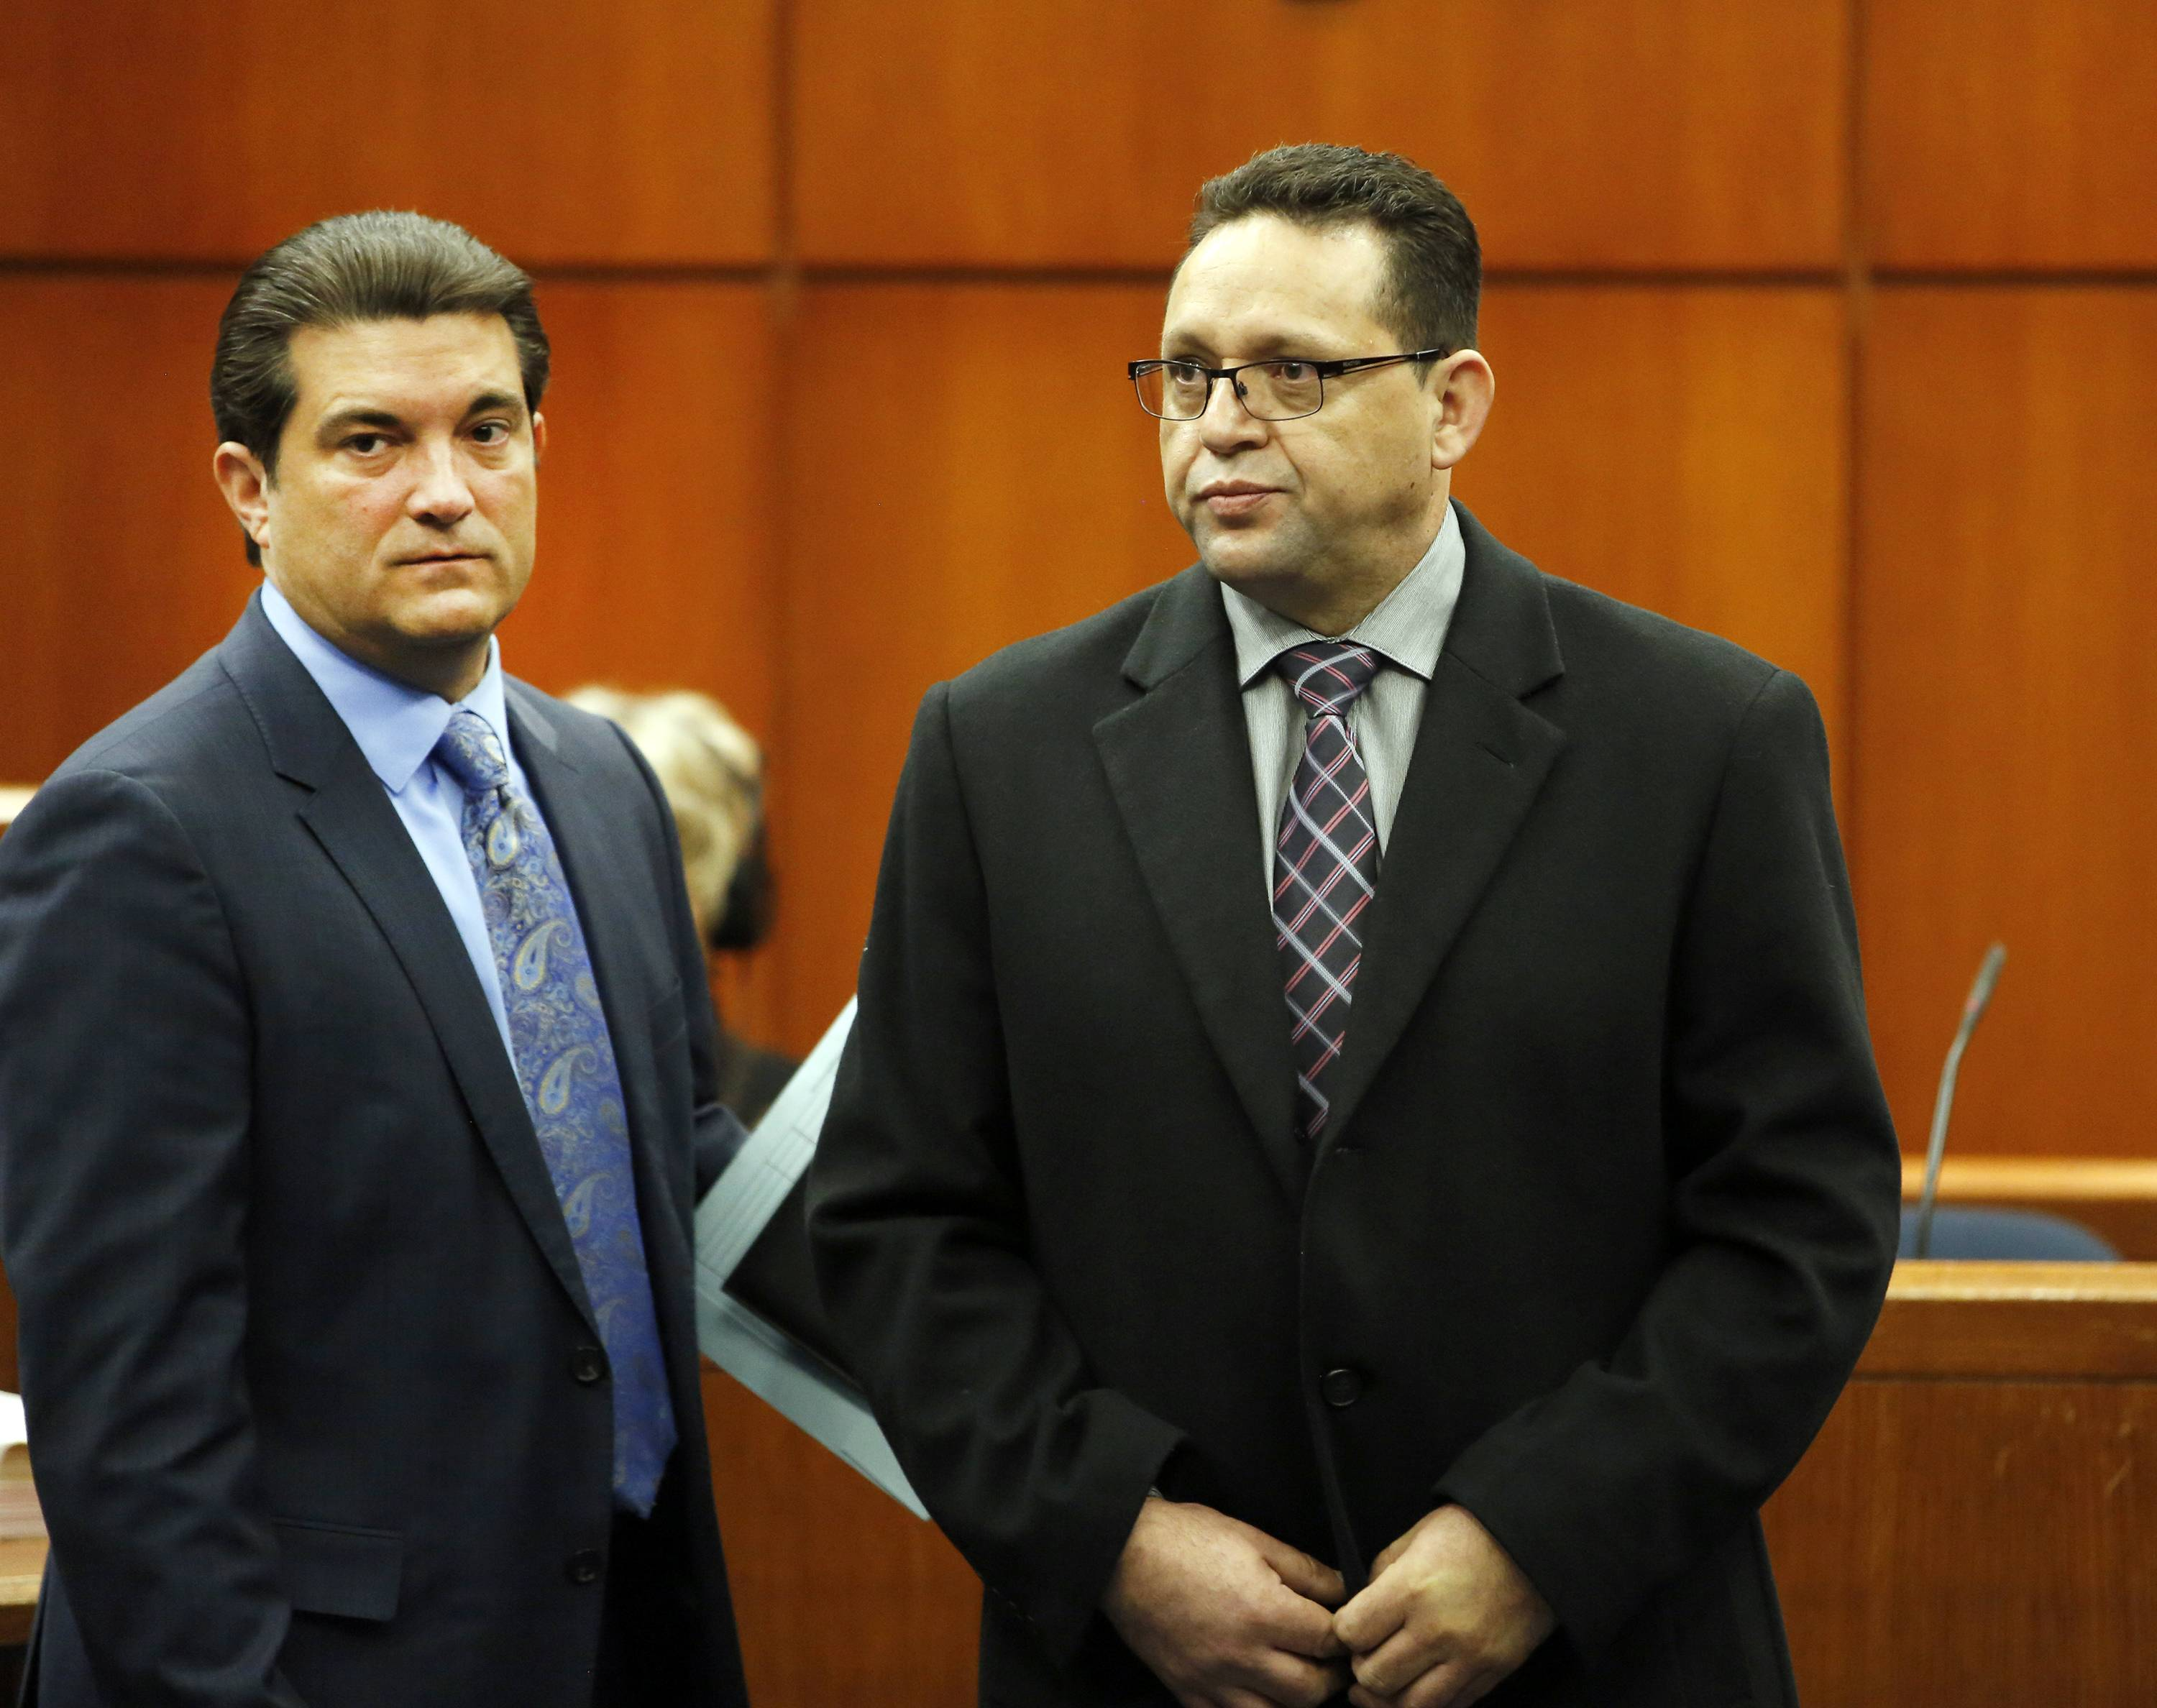 Truck driver Renato Velasquez, right, with his attorney Steven Goldman, is arraigned Monday in front of Judge Robert Kleeman at the DuPage County Courthouse in Wheaton. Velasquez was driving a semitrailer truck in January that struck emergency vehicles stopped along I-88, killing a tollway worker and injuring a state trooper.